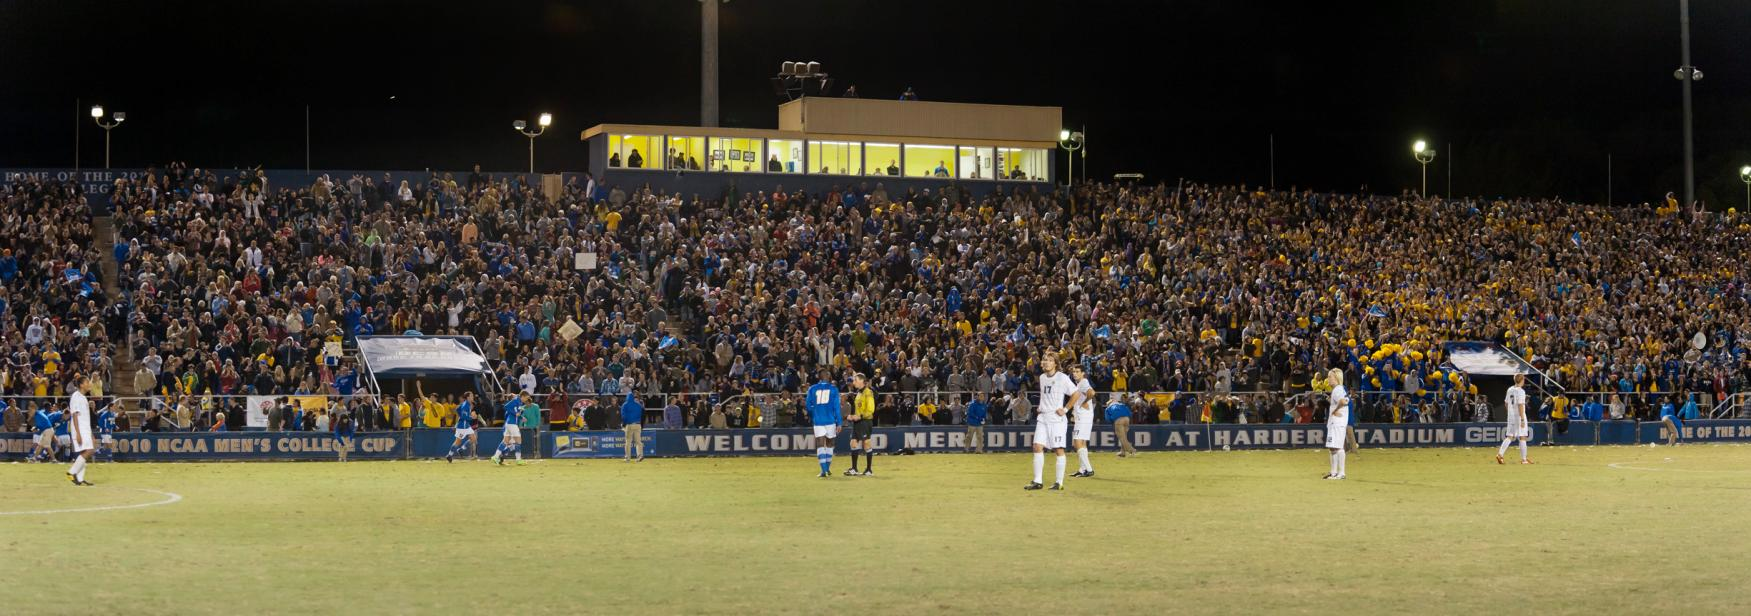 UCSB Soccer Announces 2012 Gauchos Give Dates, Launches New Community Outreach Blog